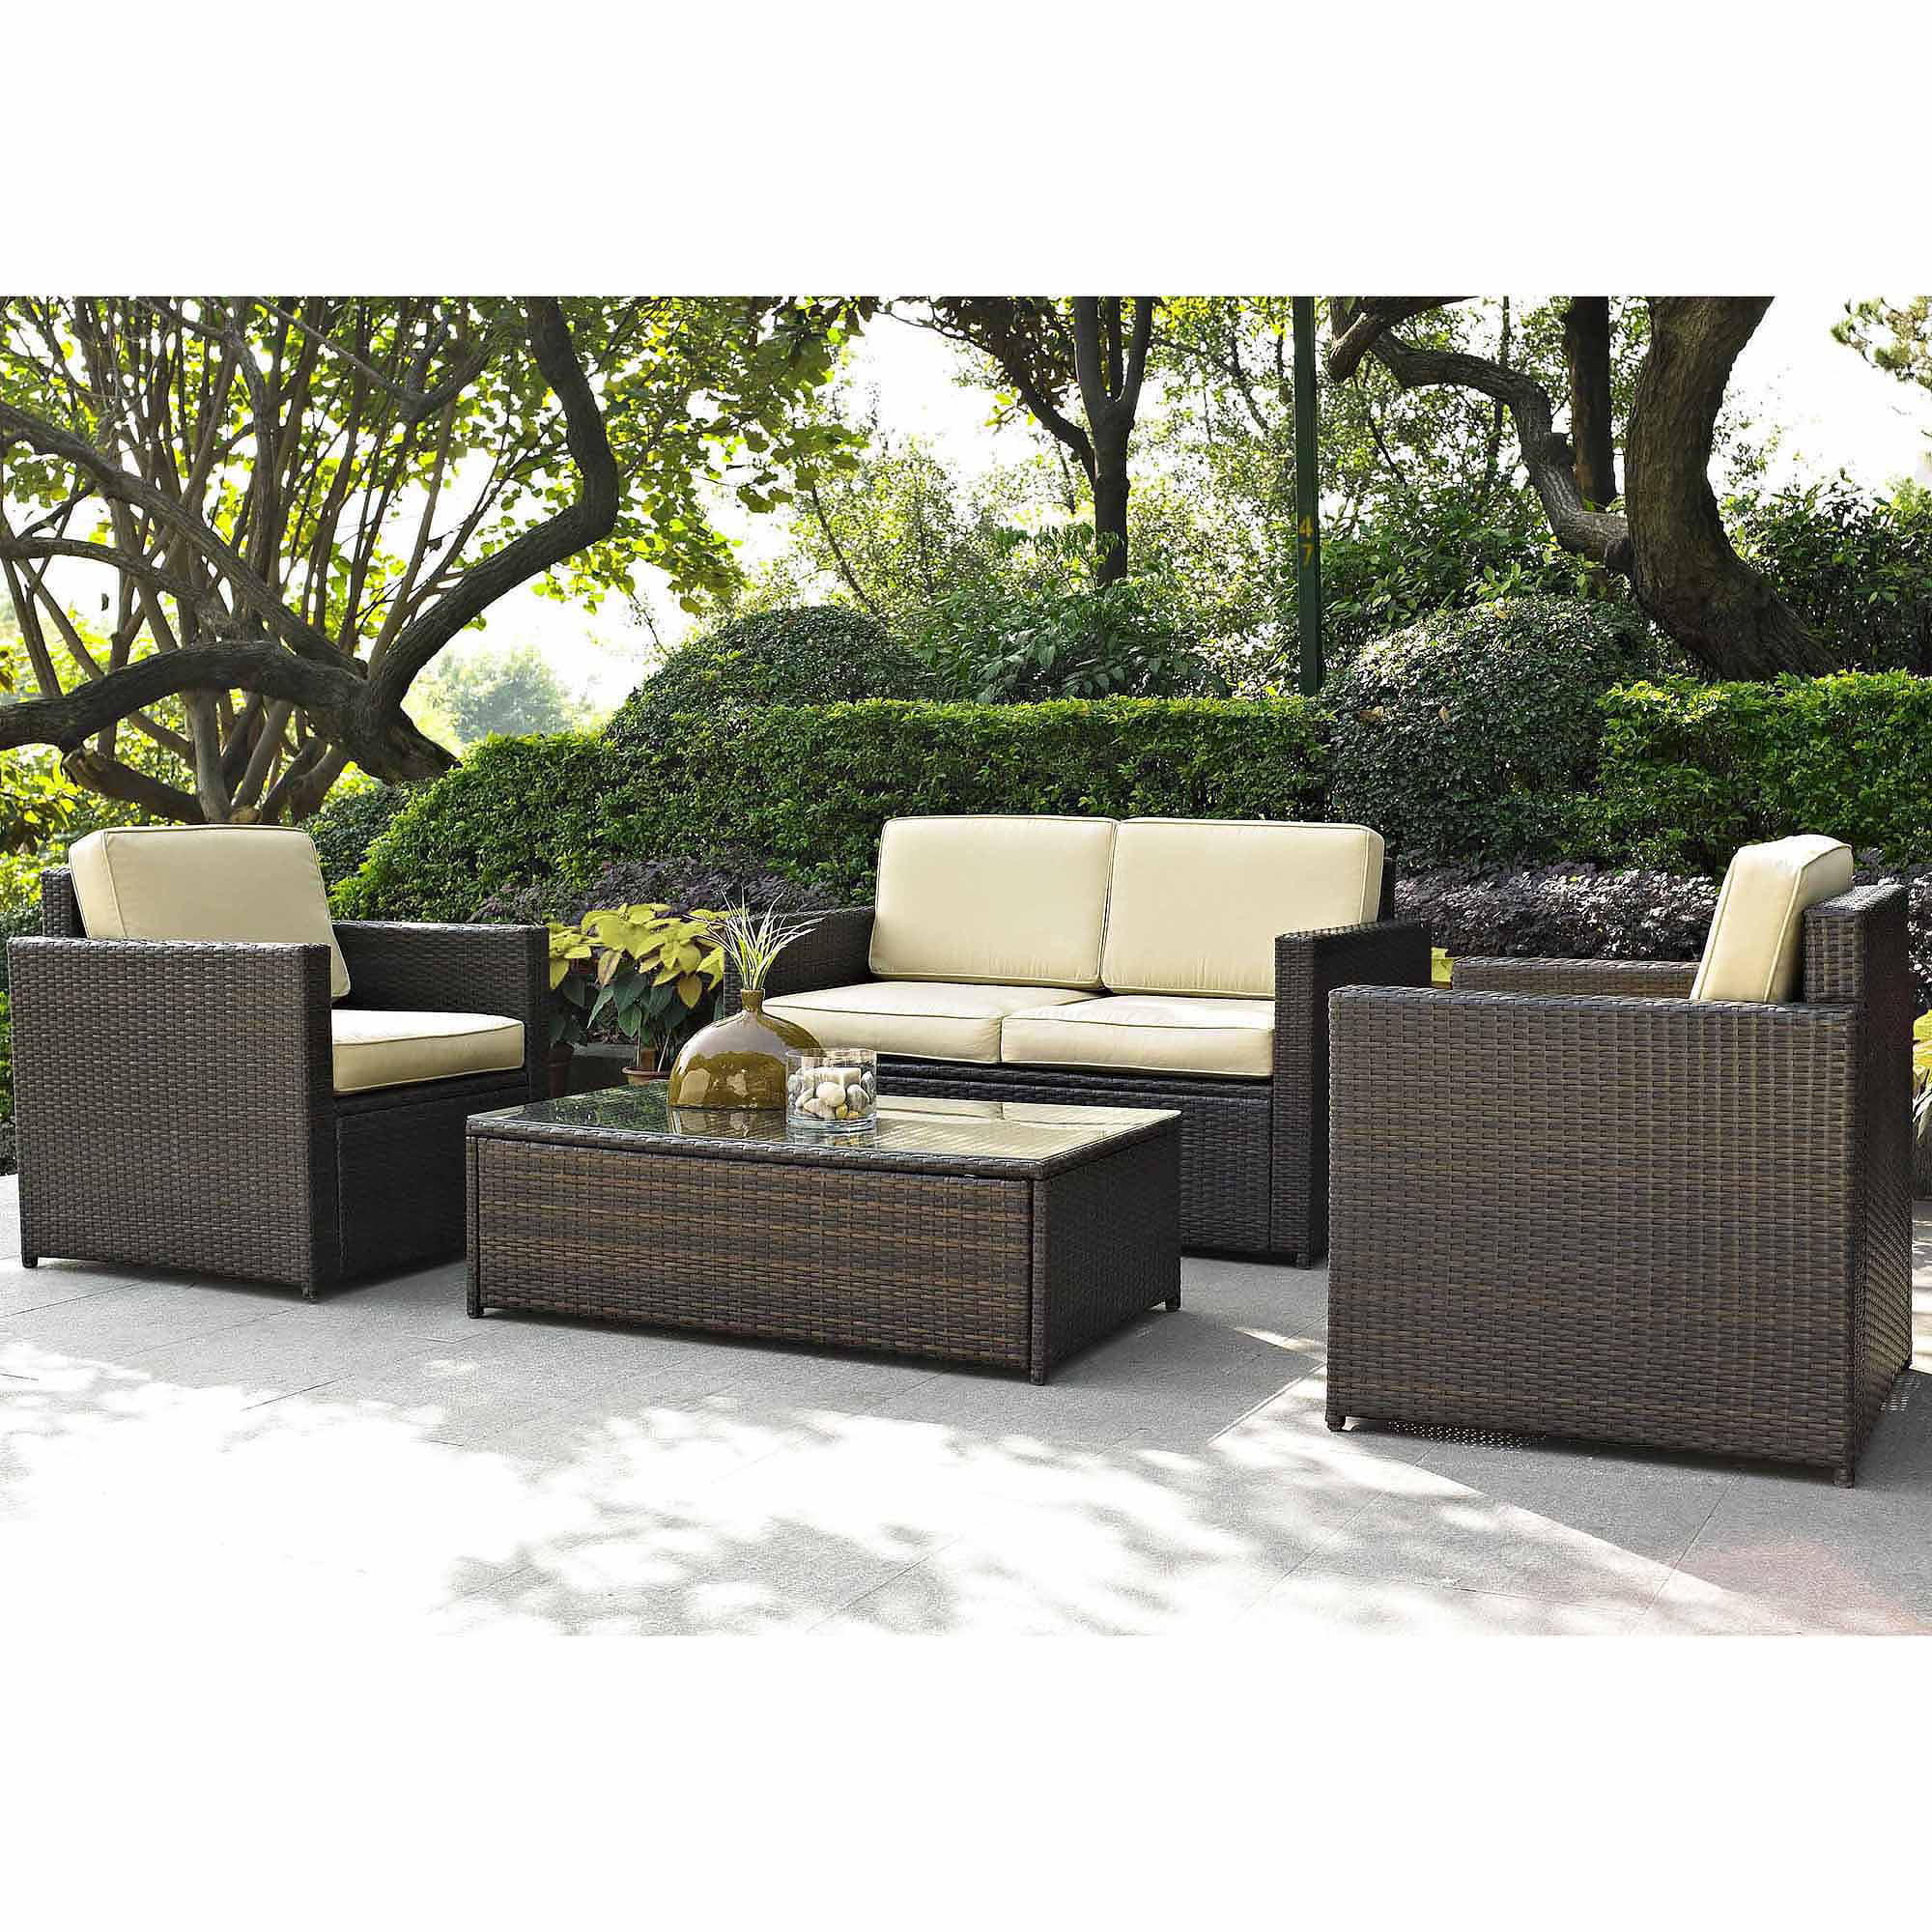 Costway Outdoor Patio 5pc Furniture Sectional Pe Wicker Rattan Sofa Set Deck Couch Black Brown